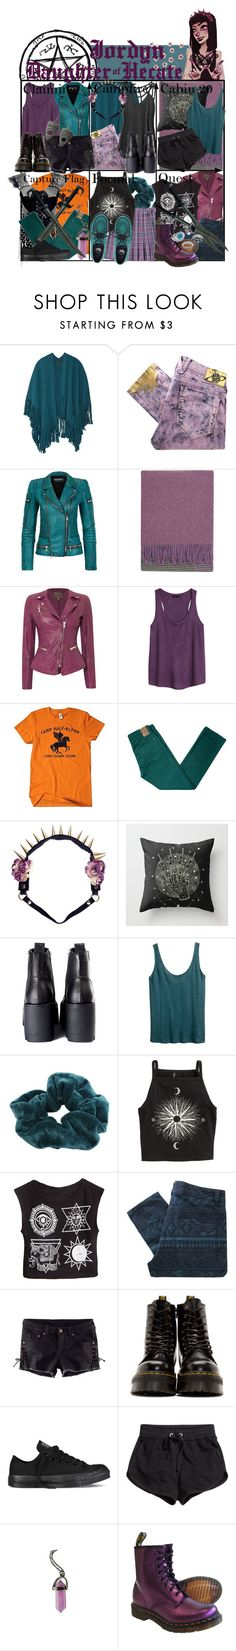 """Requested by nyssa-fire: Jordyn Daughter of Hecate"" by liesle ❤ liked on Polyvore featuring Burberry, Vivienne Westwood Anglomania, Balmain, John Hanly & Co., MuuBaa, H&M, 10.Deep, Bitching & Junkfood, Rival and CO"